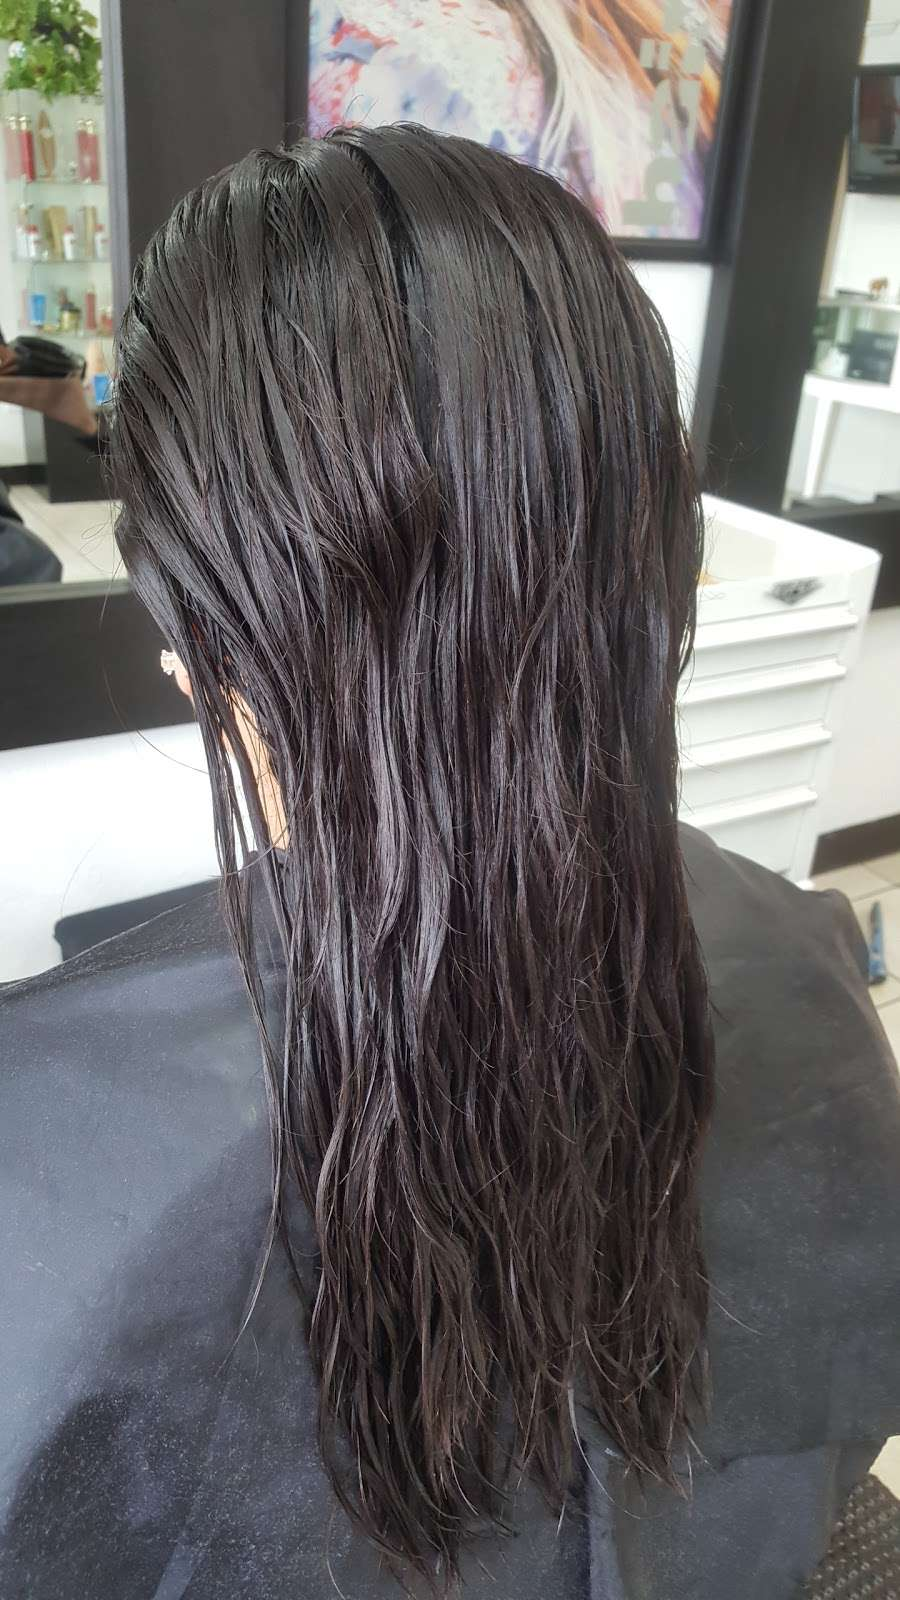 Hair Xpressions Salon - hair care  | Photo 8 of 10 | Address: 8949 Westheimer Rd, Houston, TX 77063, USA | Phone: (713) 550-9266